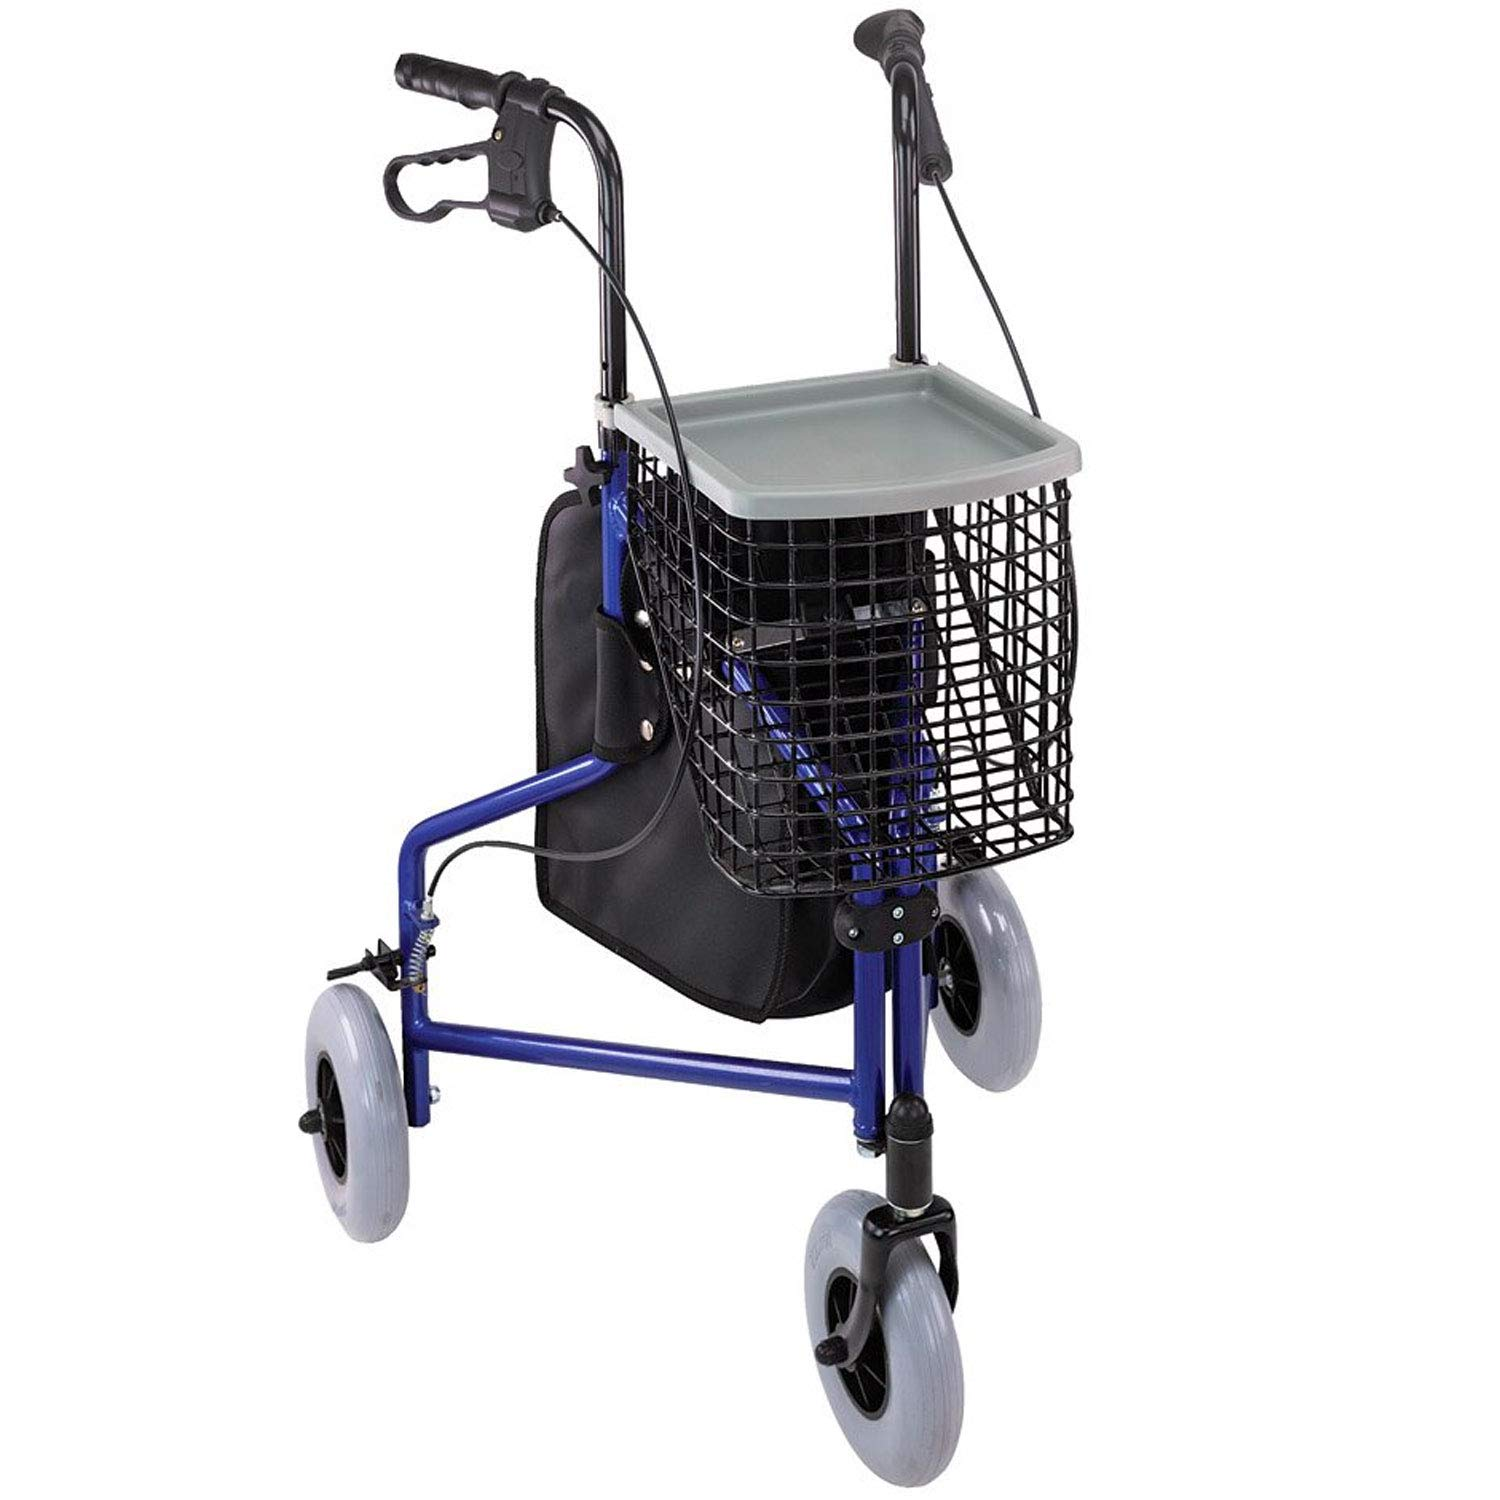 Duro-Med Folding Rollator Walker with Swiveling Front Wheels, 3 Wheel, Aluminum Light-Weight, Detachable Storage Tray, Royal Blue by Duro-Med